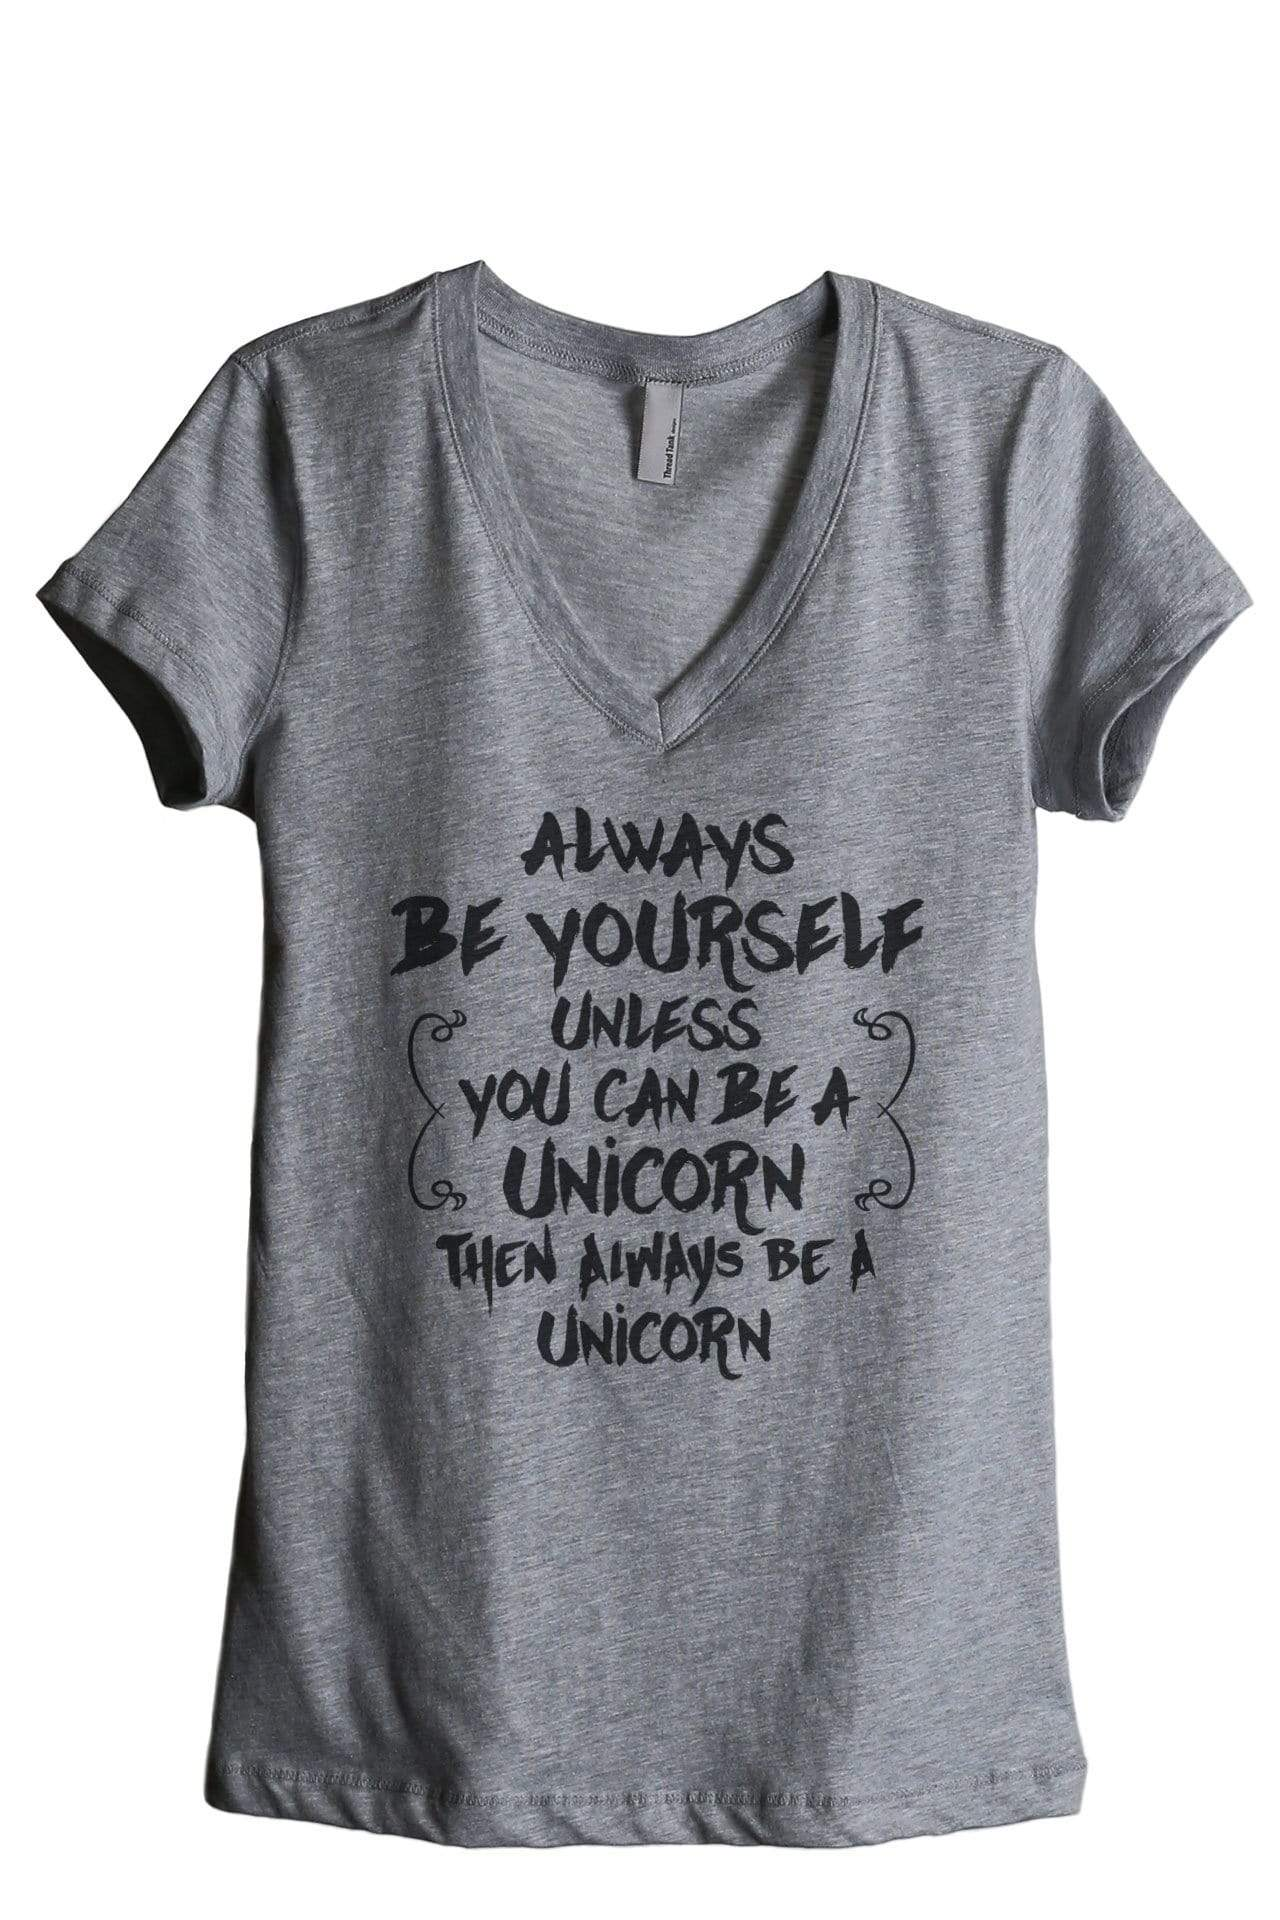 Always Be Yourself Unicorn - Thread Tank | Stories You Can Wear | T-Shirts, Tank Tops and Sweatshirts